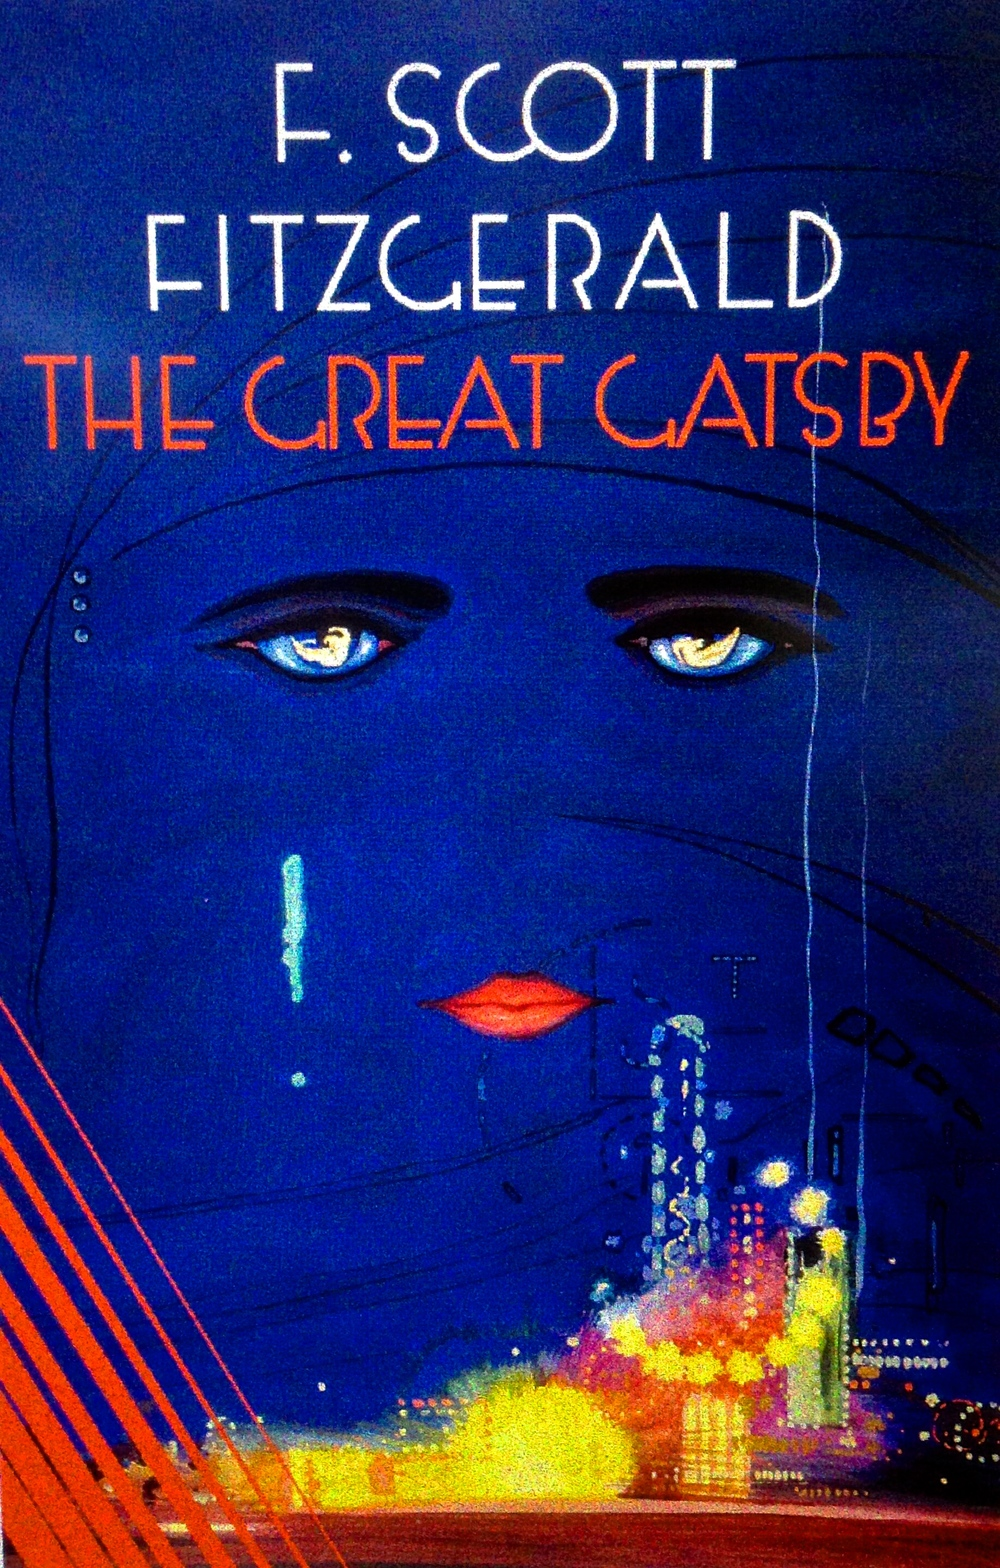 thegreatgatsby_photo.jpg.jpg